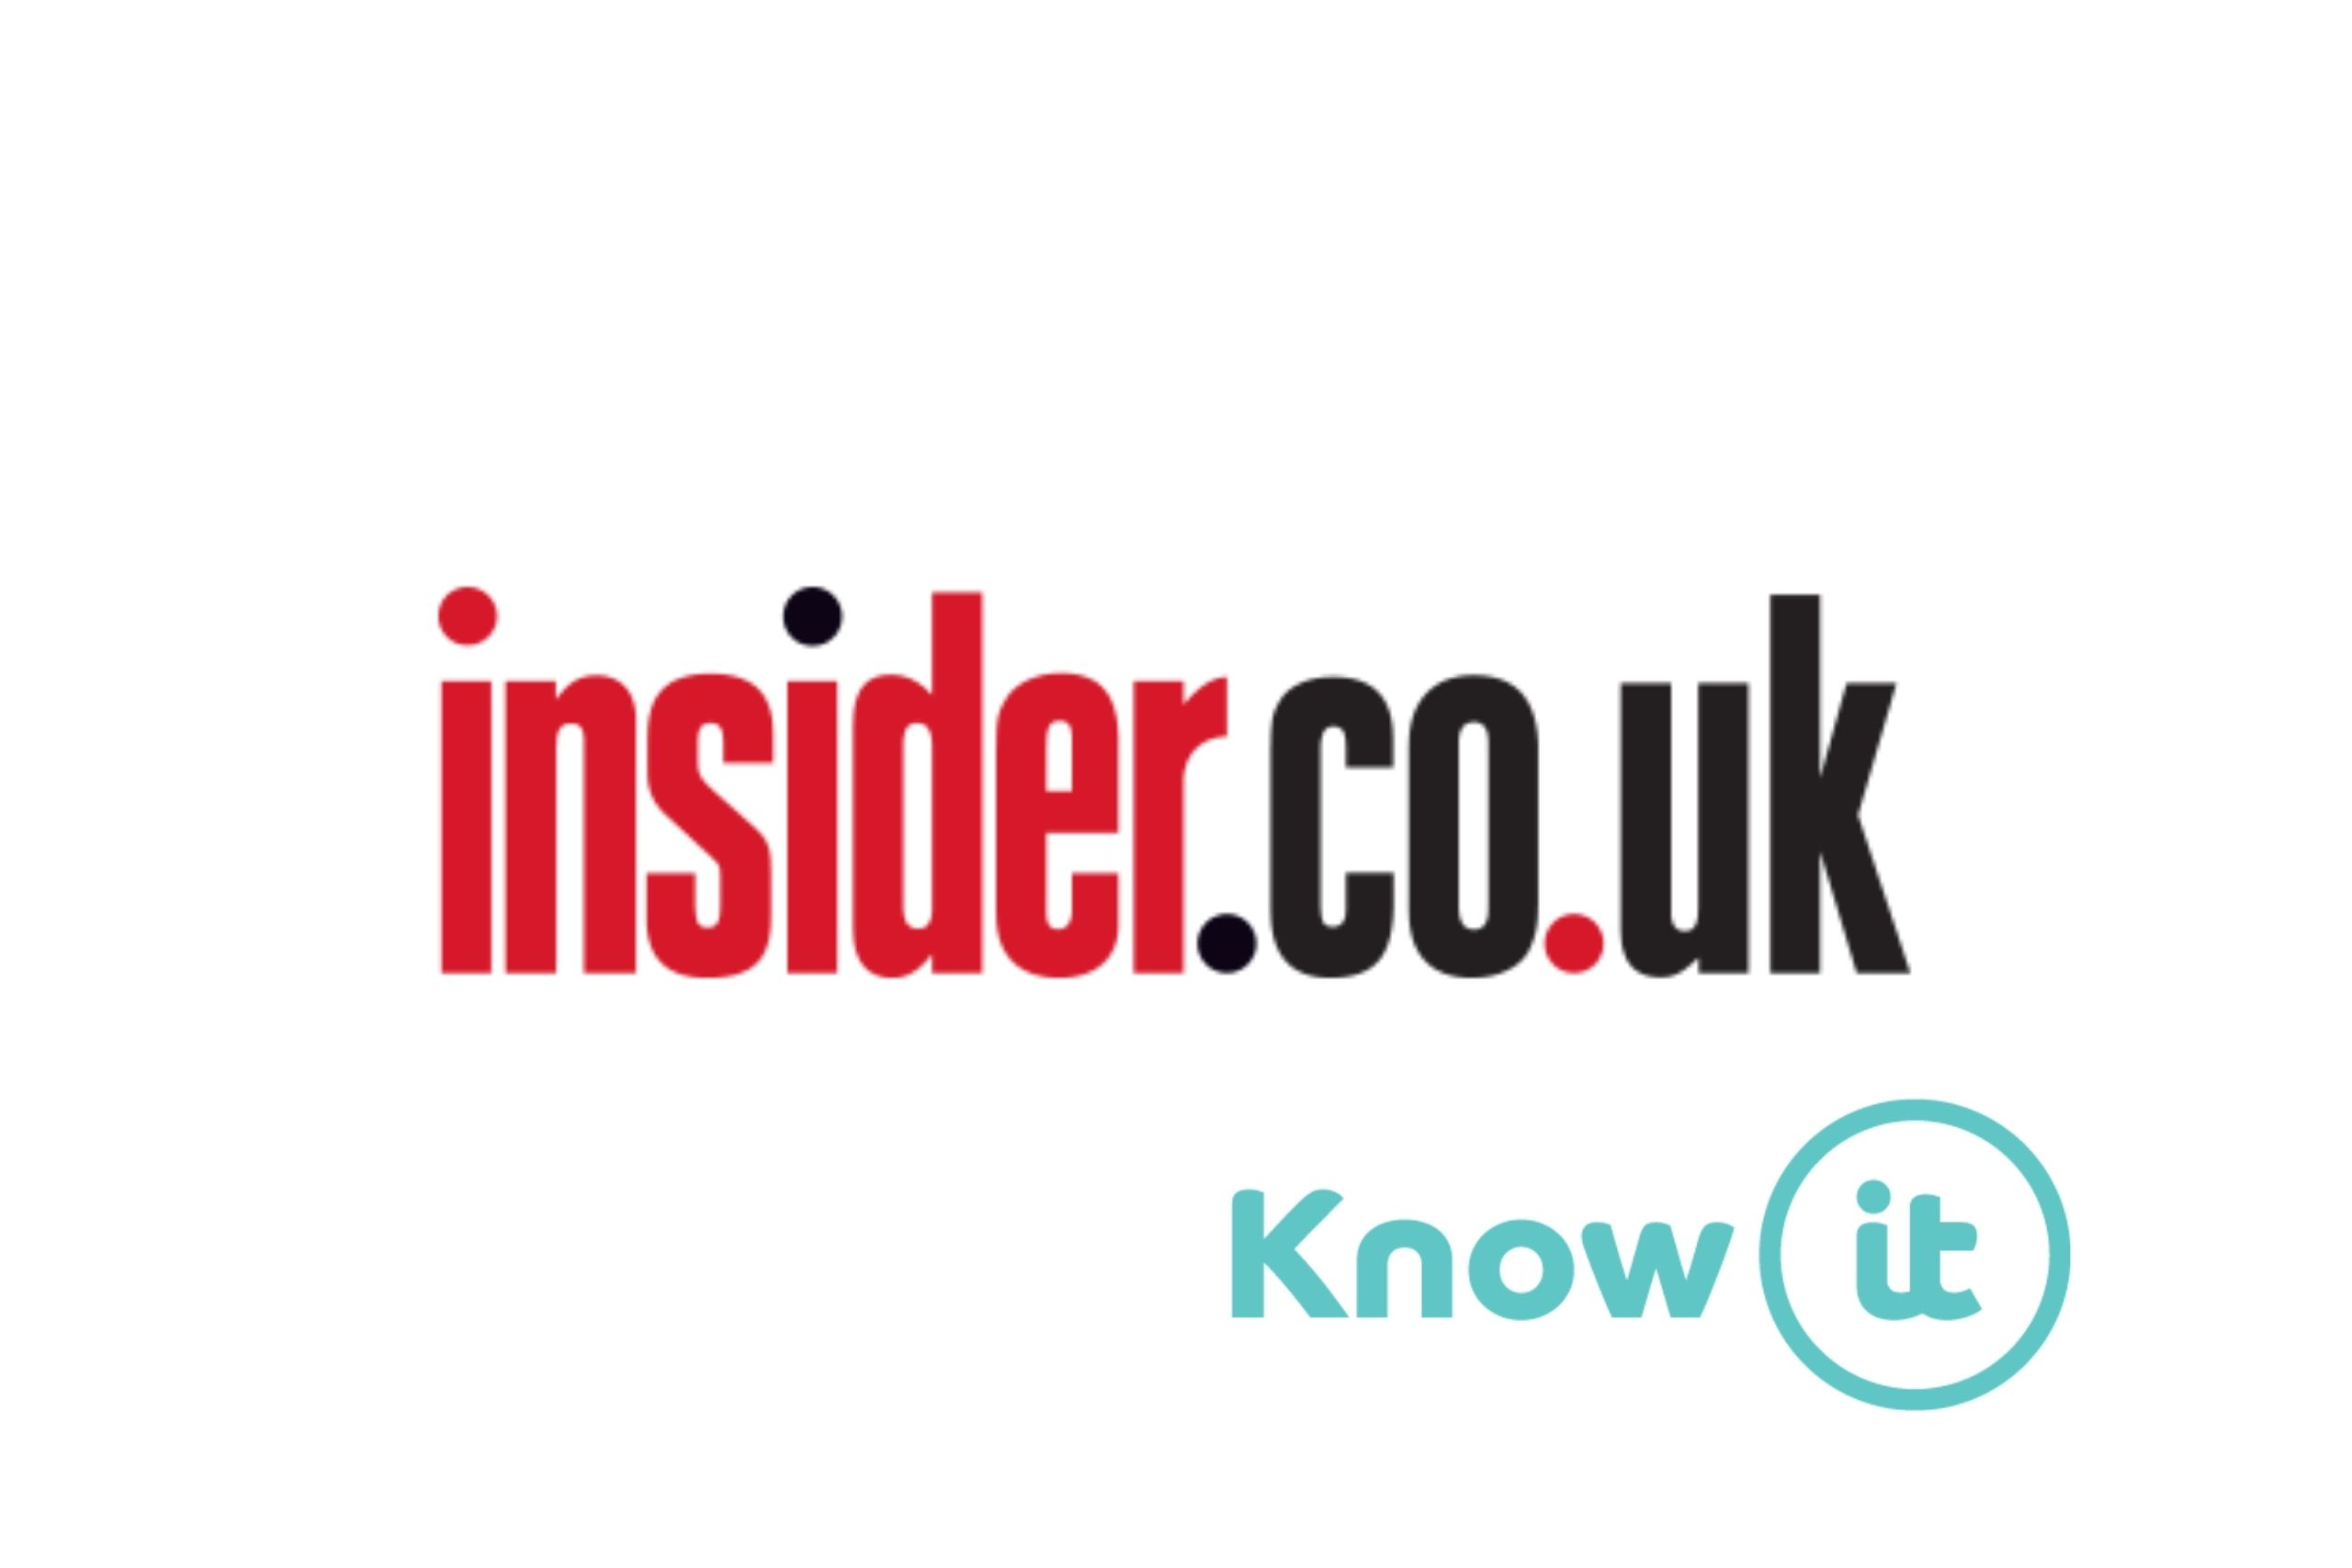 Image with Know-it logo and Insider.co.uk Logo